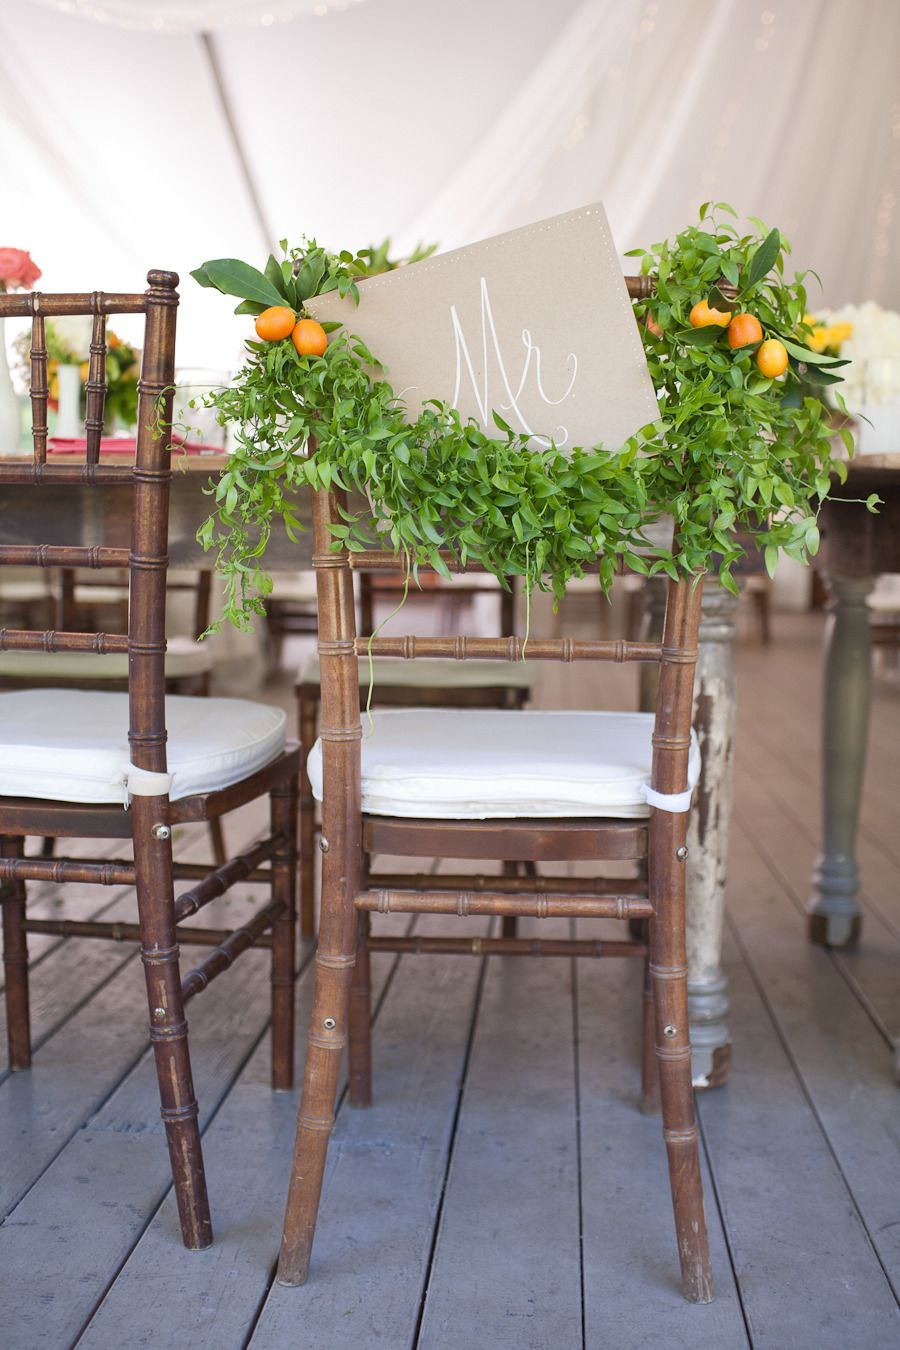 1920's themed wedding decorations  Chair of the groom  Photography Katie Vowels for Annie McElwain